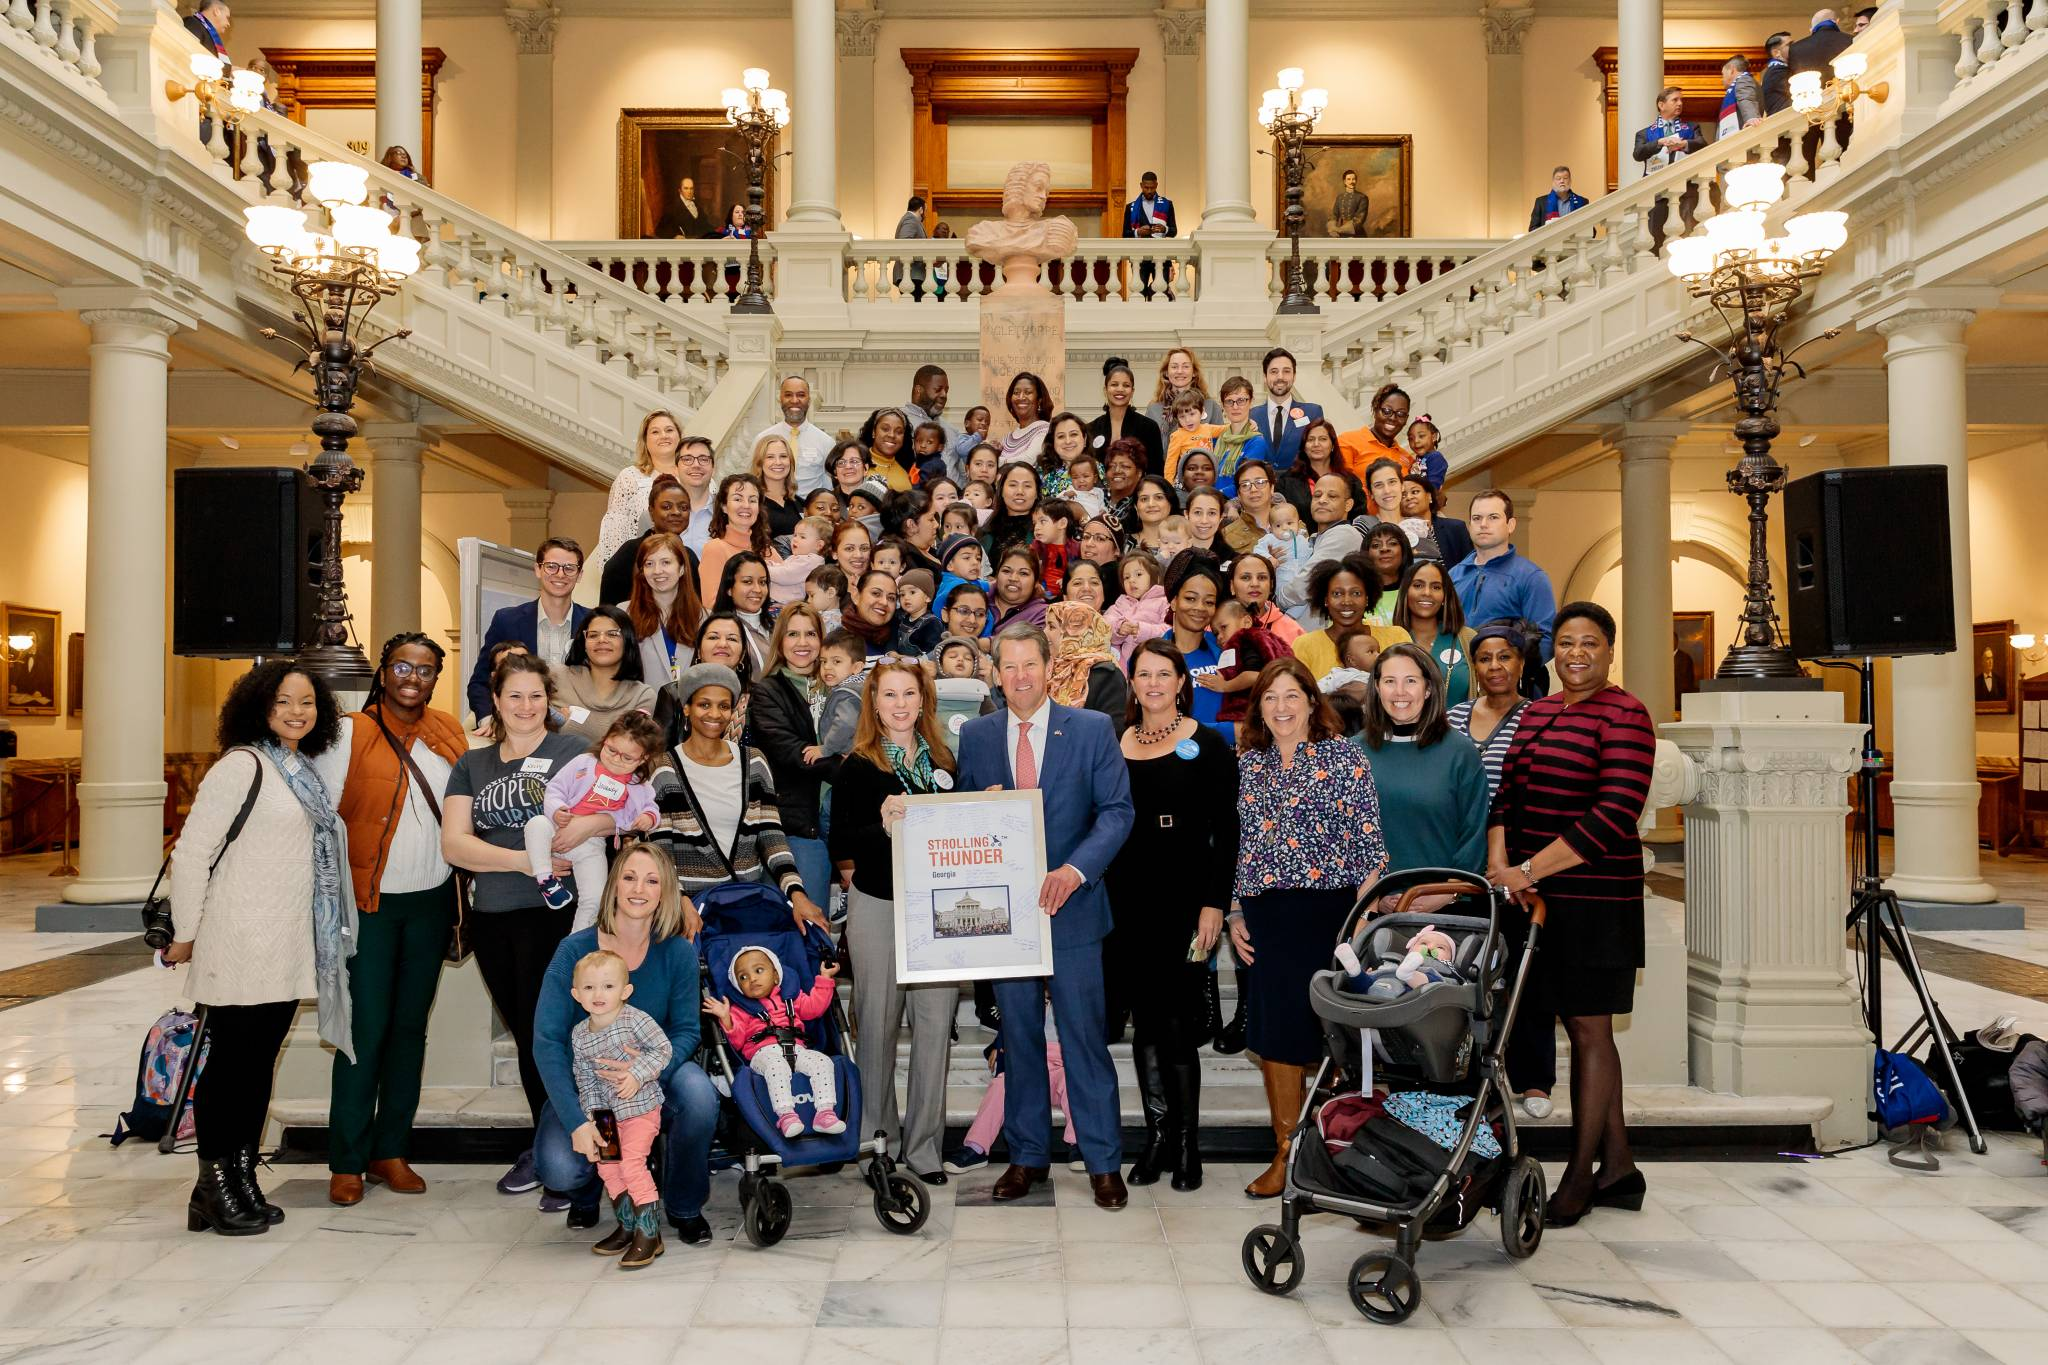 The photo shows a group of around 100 parents with infants and toddlers standing on stairs around Georgia Governor, Brian Kemp.